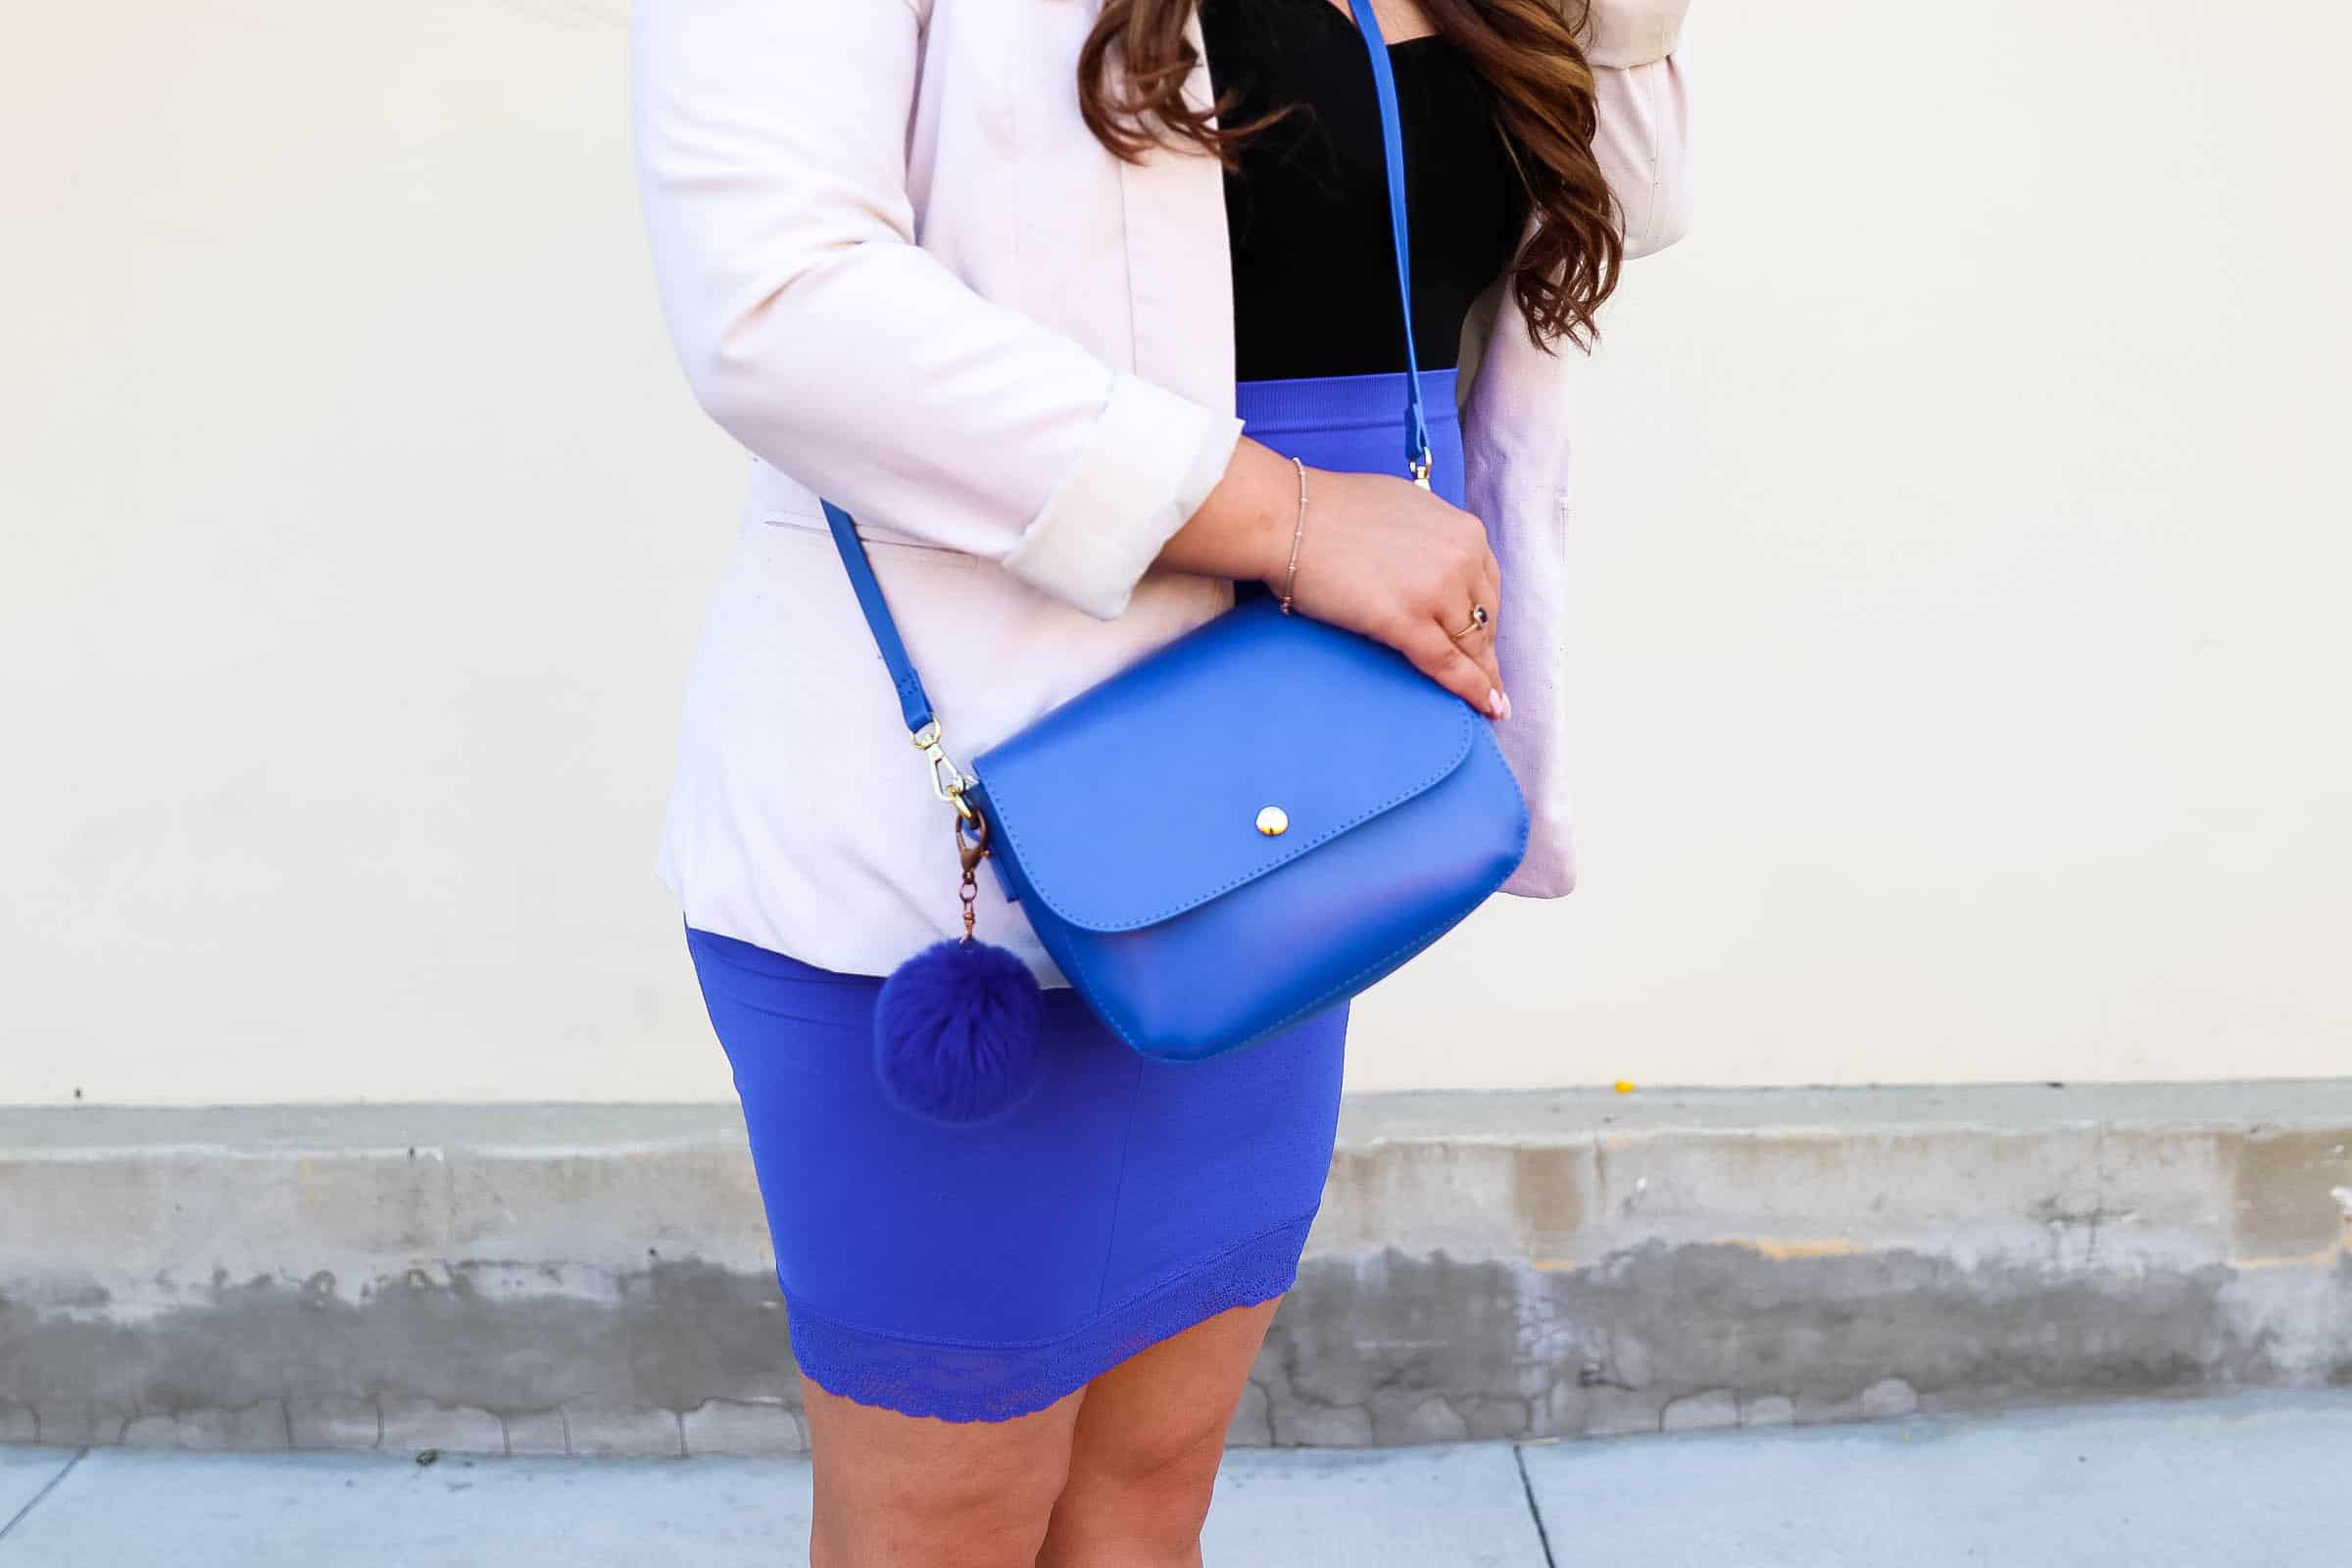 missyonmadison, missyonmadison instagram, fashion blogger, blogger style, cobalt blue skirt, cobalt blue pencil skirt, white boyfriend blazer, black bodysuit, intermix, jewel toned, white heels, white ankle strap heels, style blogger, charming charlie, cobalt blue crossbody bag, charming charlie bag, la blogger, hair extensions, raybans, studio city, office wear, girls night out, date night, pop of color, affordable style, boyfriend blazer,